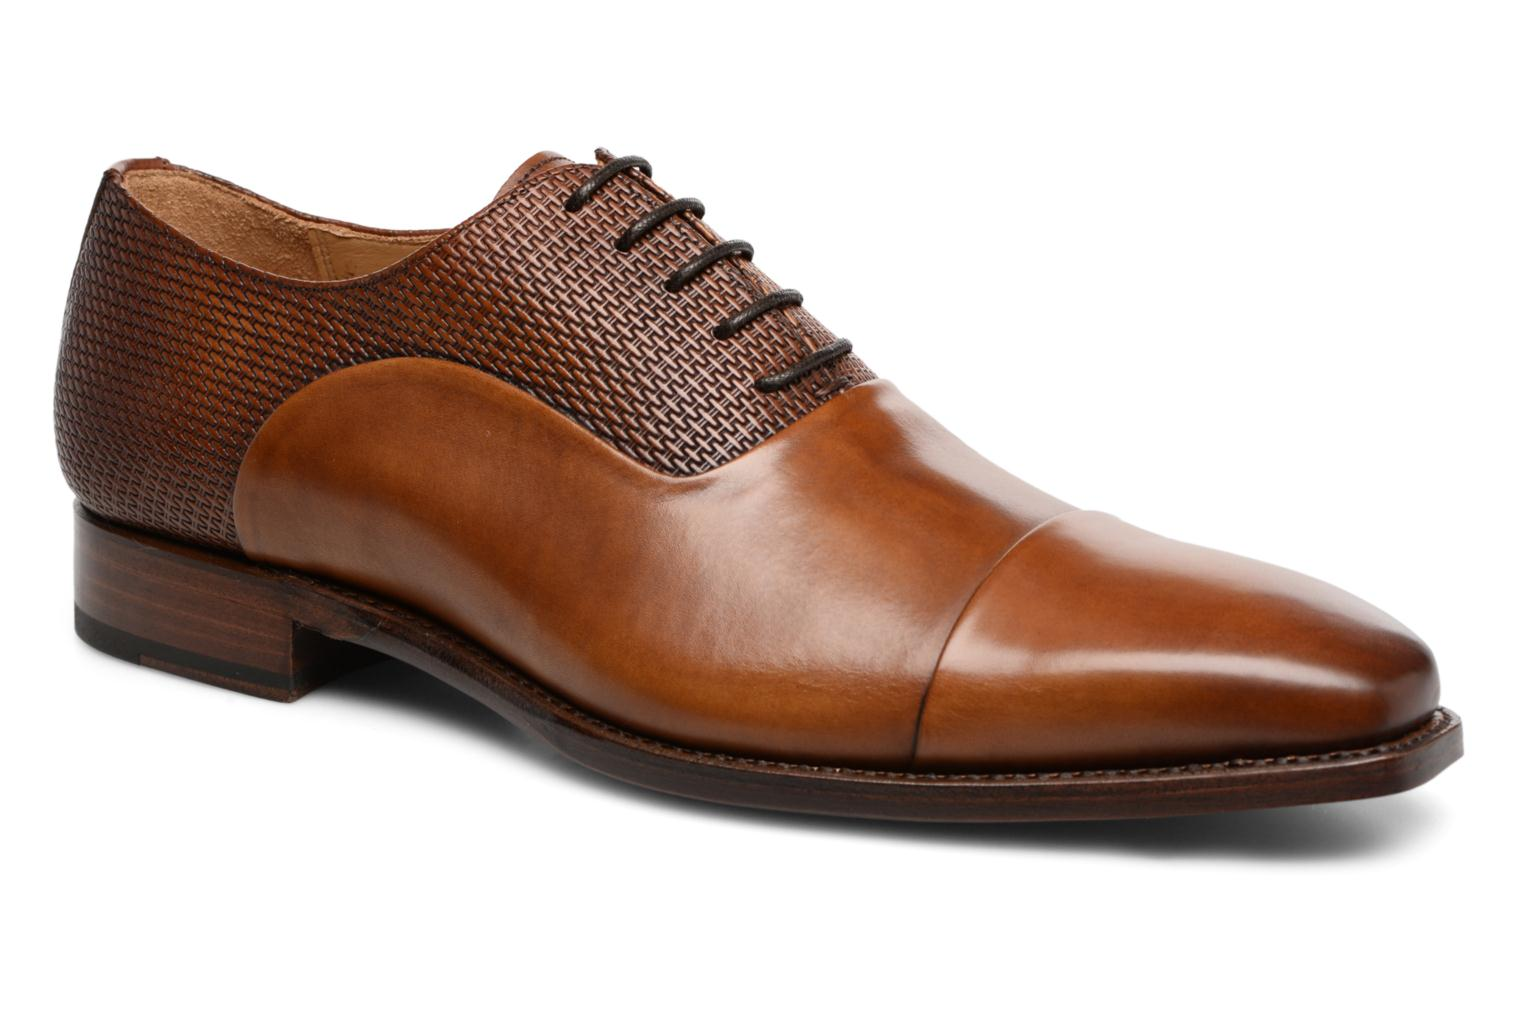 Marques Chaussure luxe homme Marvin&Co Luxe homme Warwick - Cousu Goodyear Elba noce +Elba noce masay